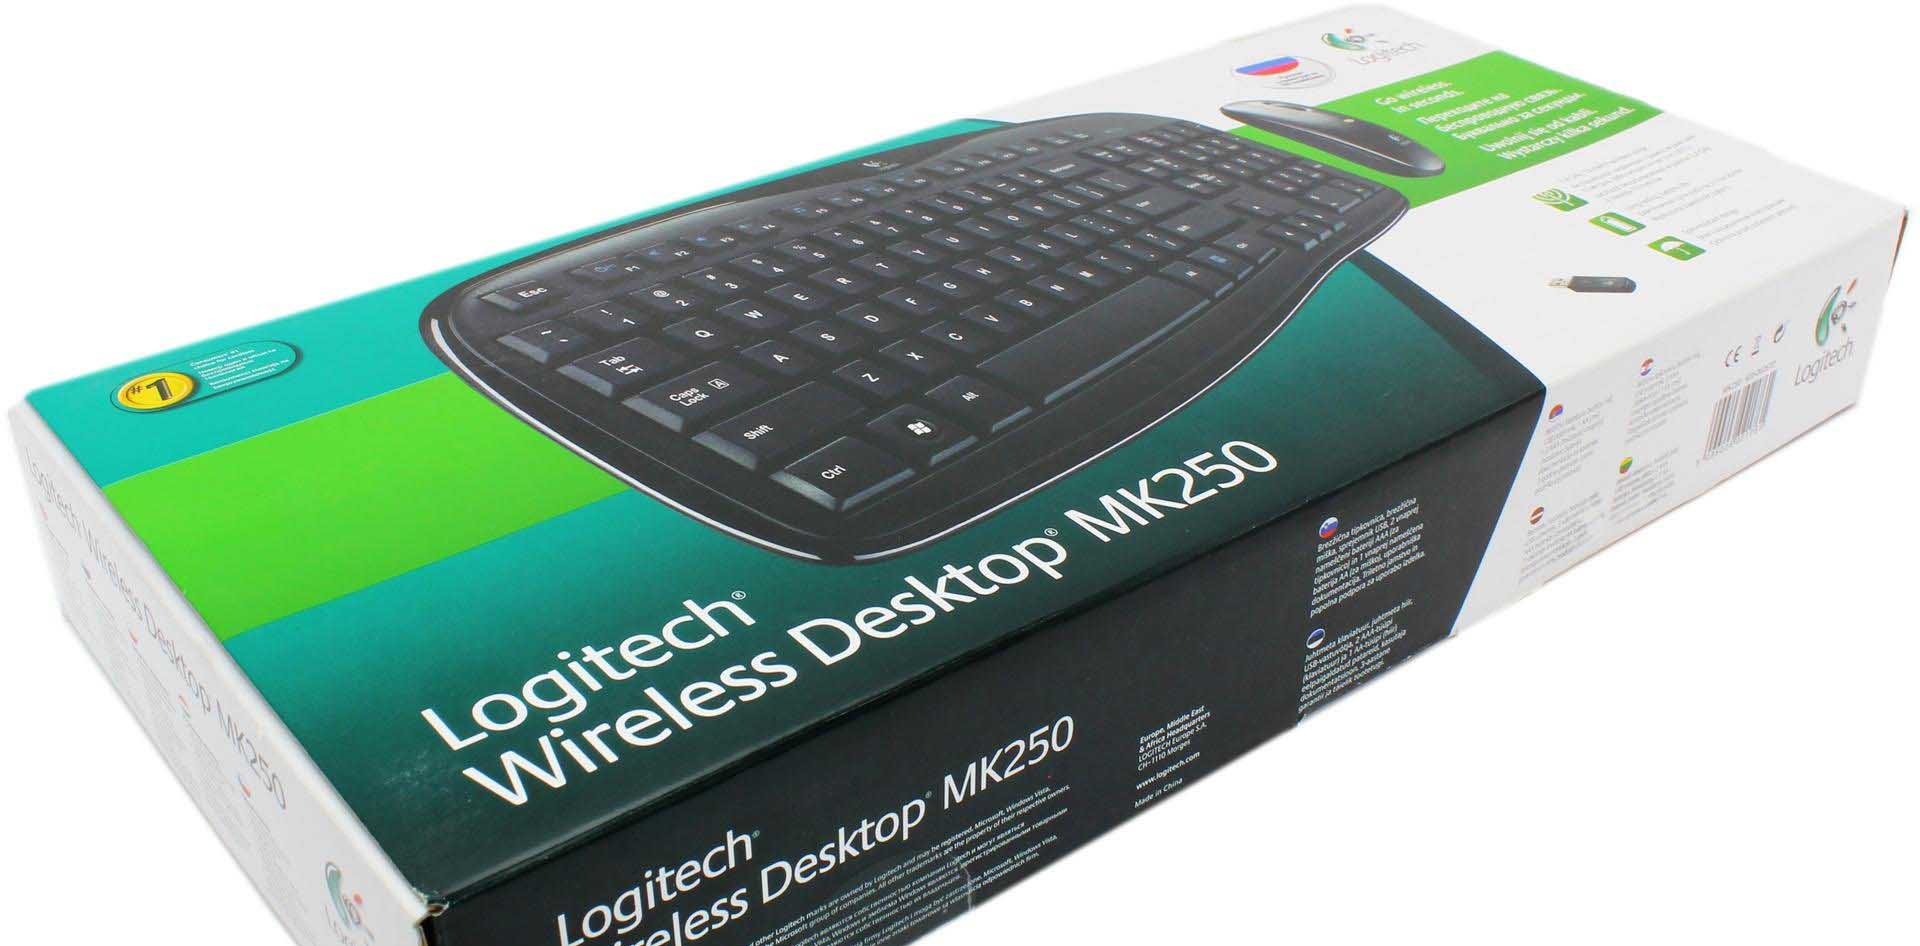 Упаковка Logitech Wireless Desktop MK250